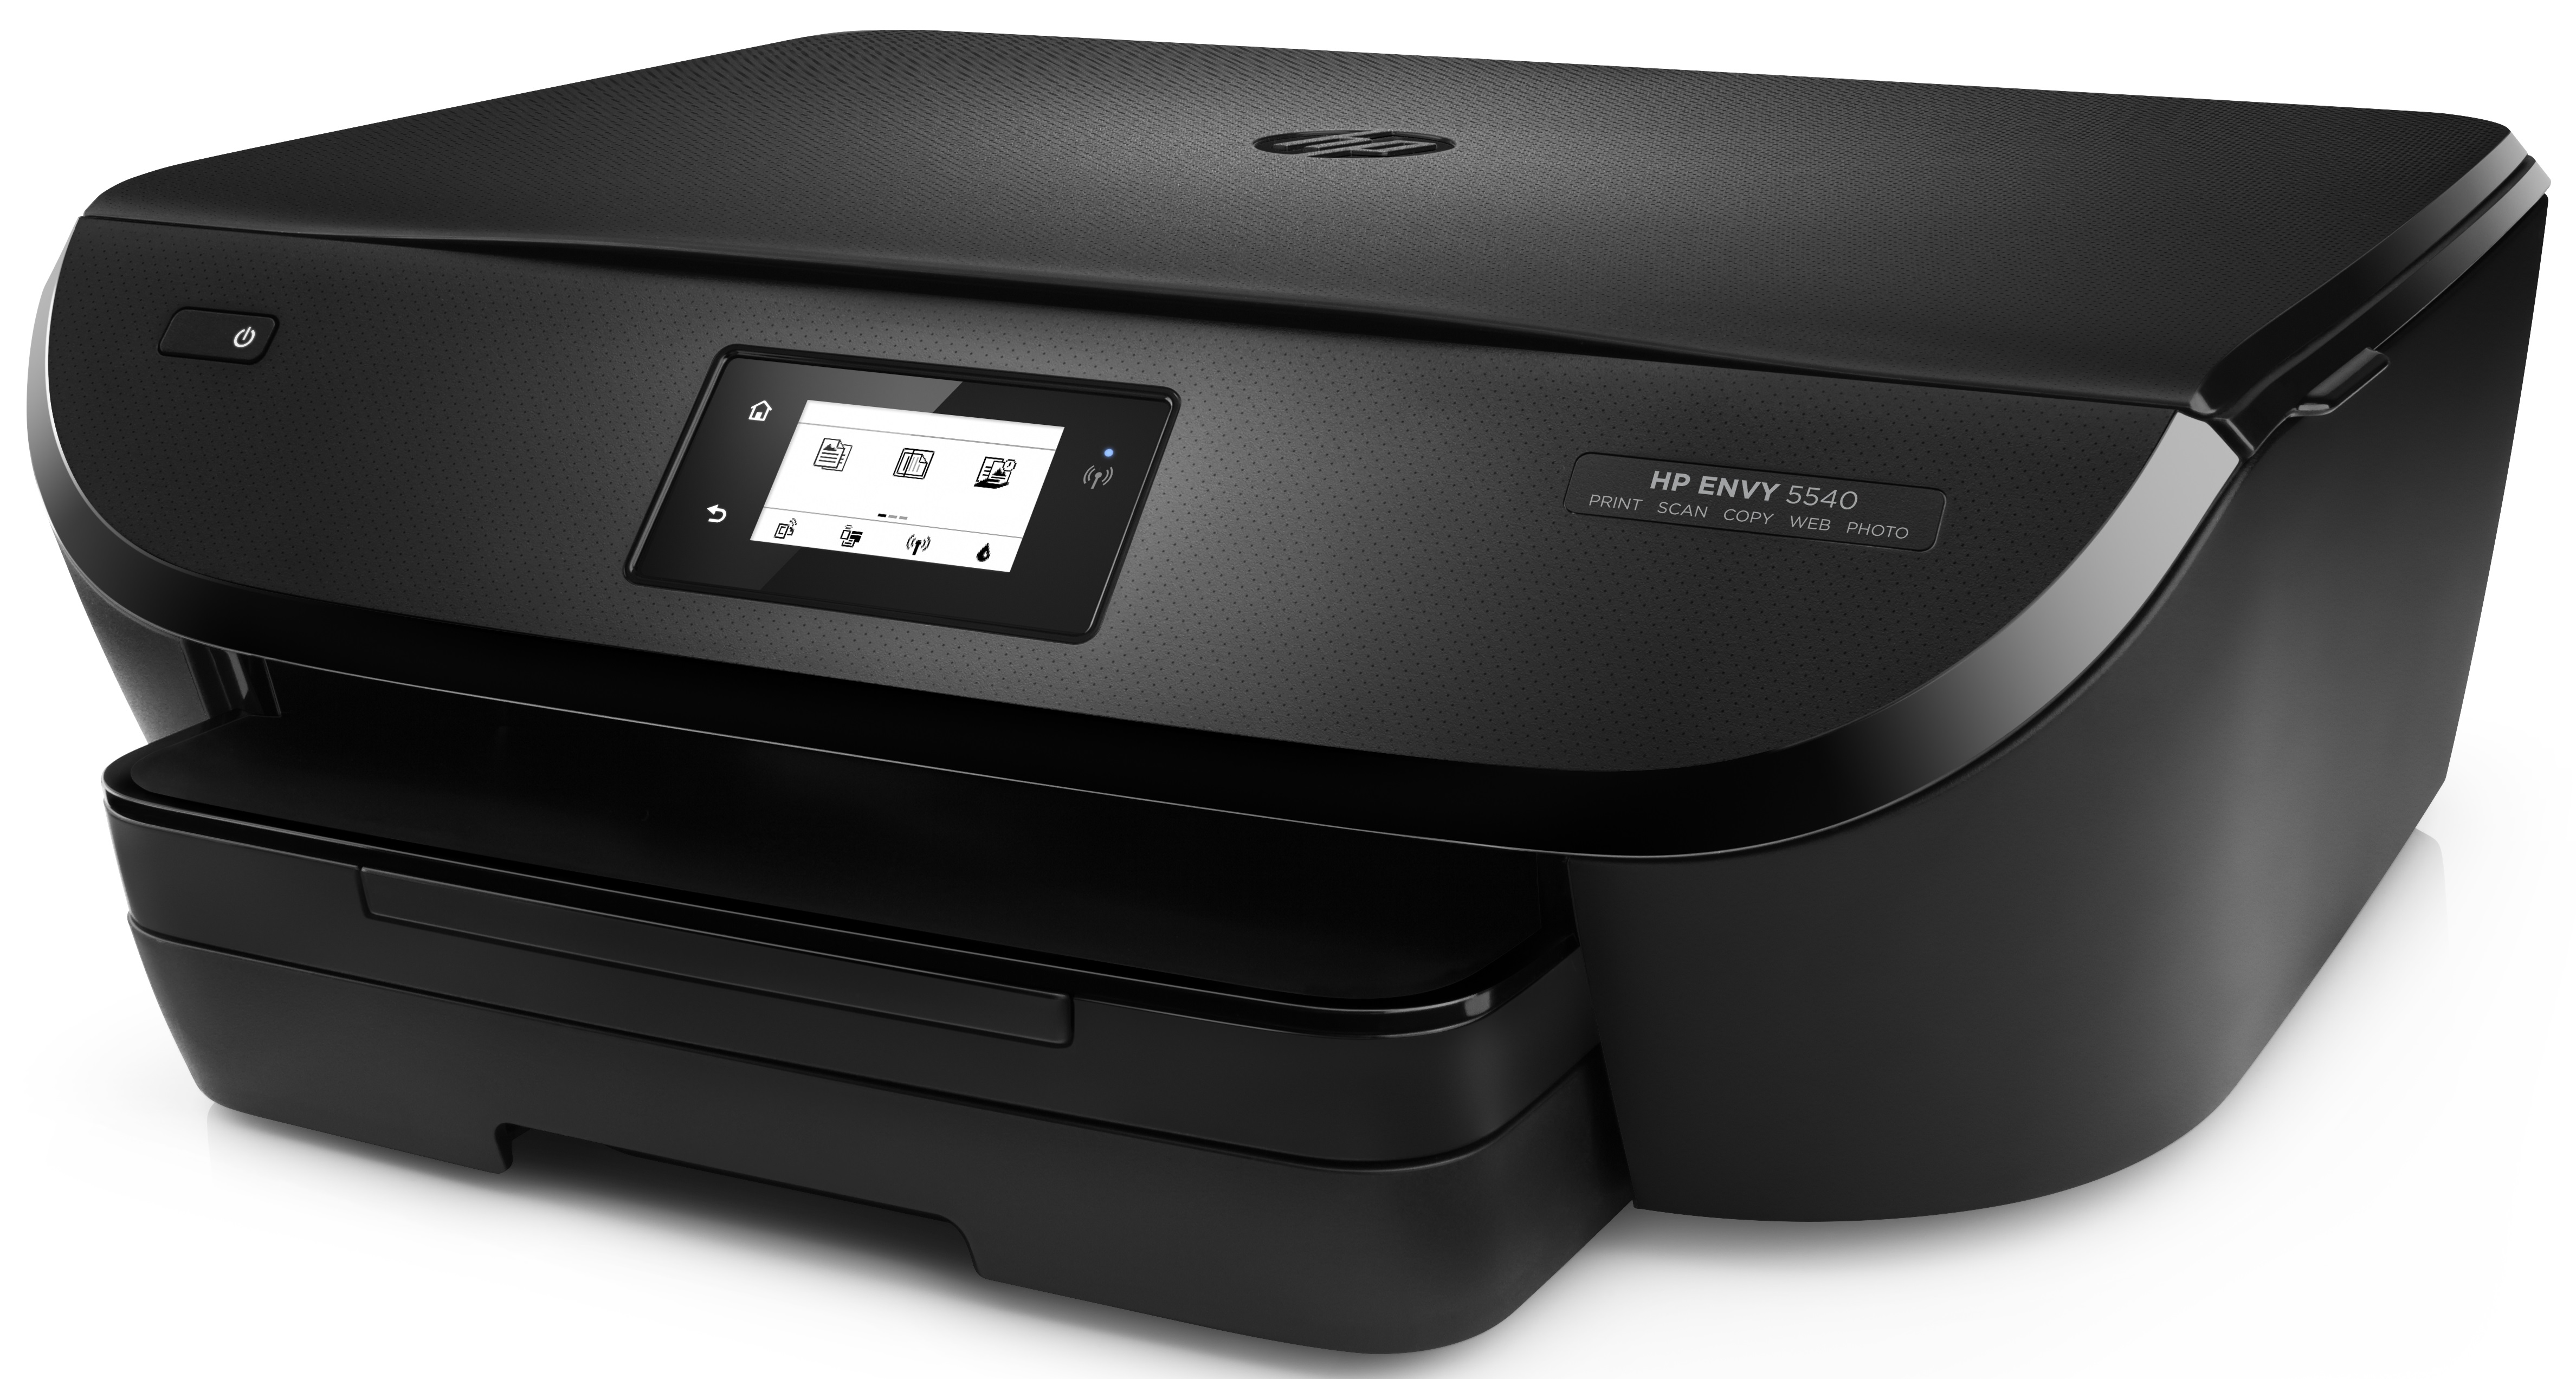 HP Envy 5540 e-All-in-One